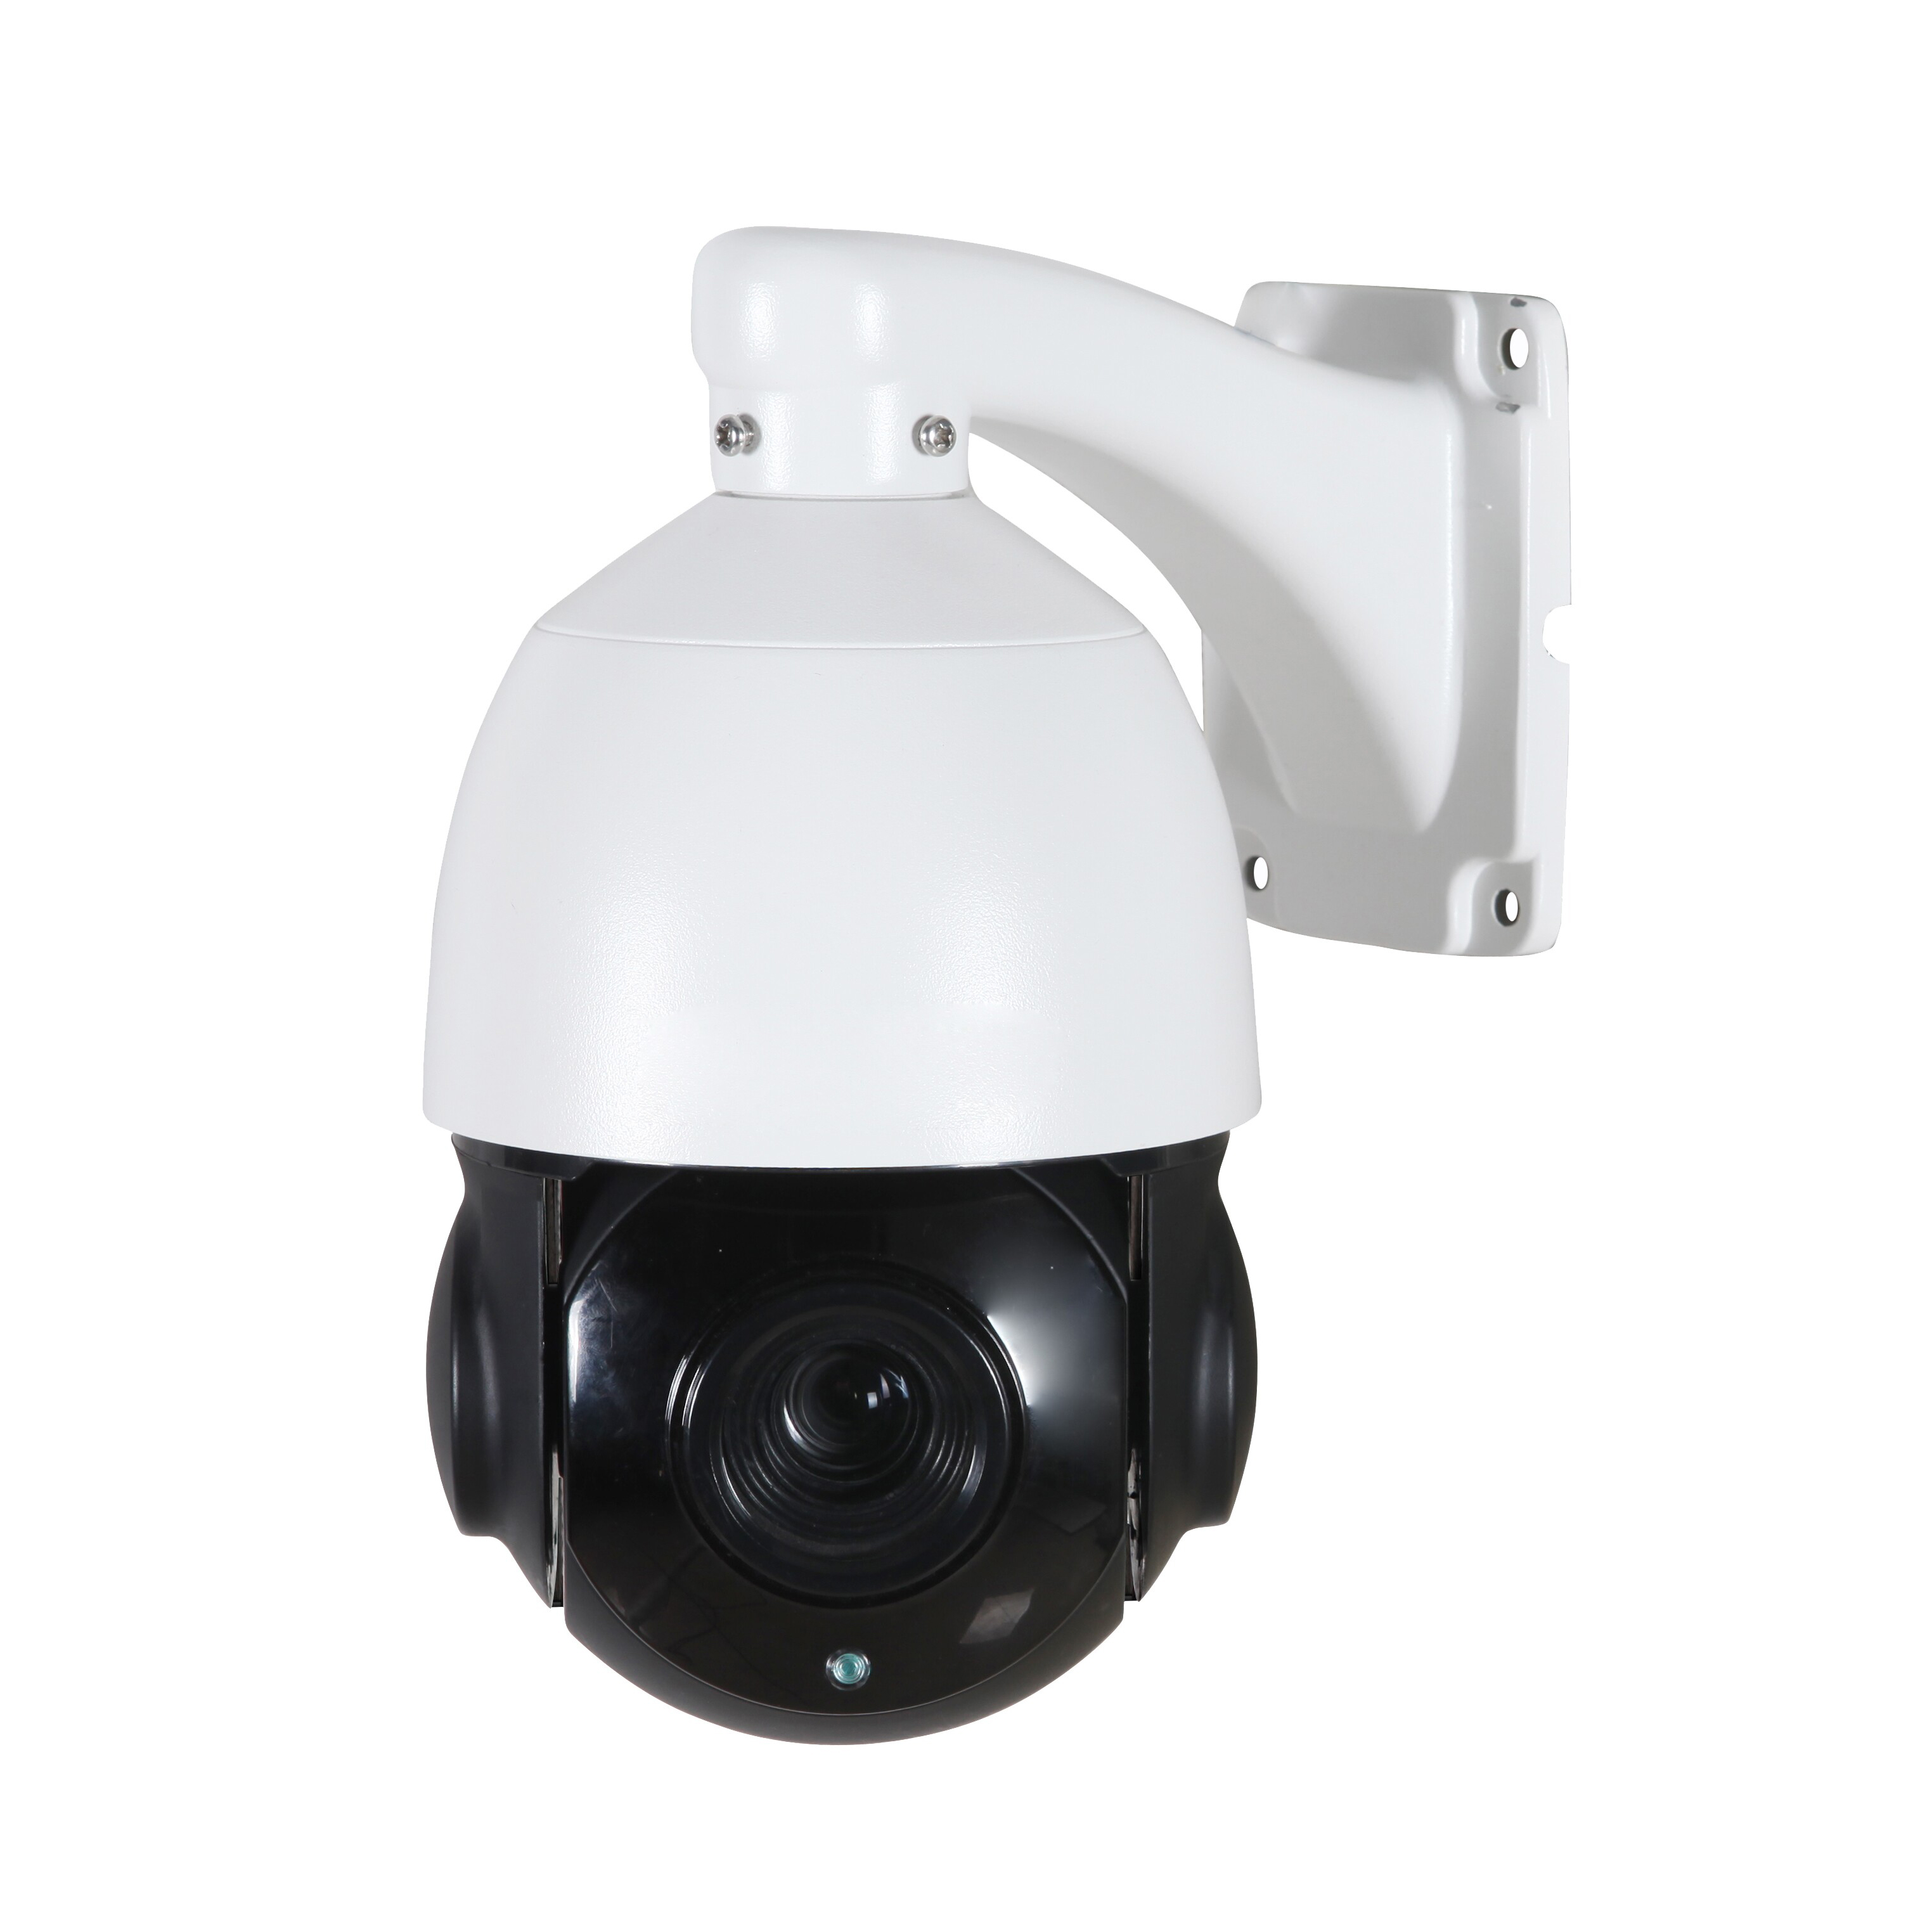 ip netzwerk camera kamera ptz ir ip66 outdoor dome 4mp 20x zoom ebay. Black Bedroom Furniture Sets. Home Design Ideas